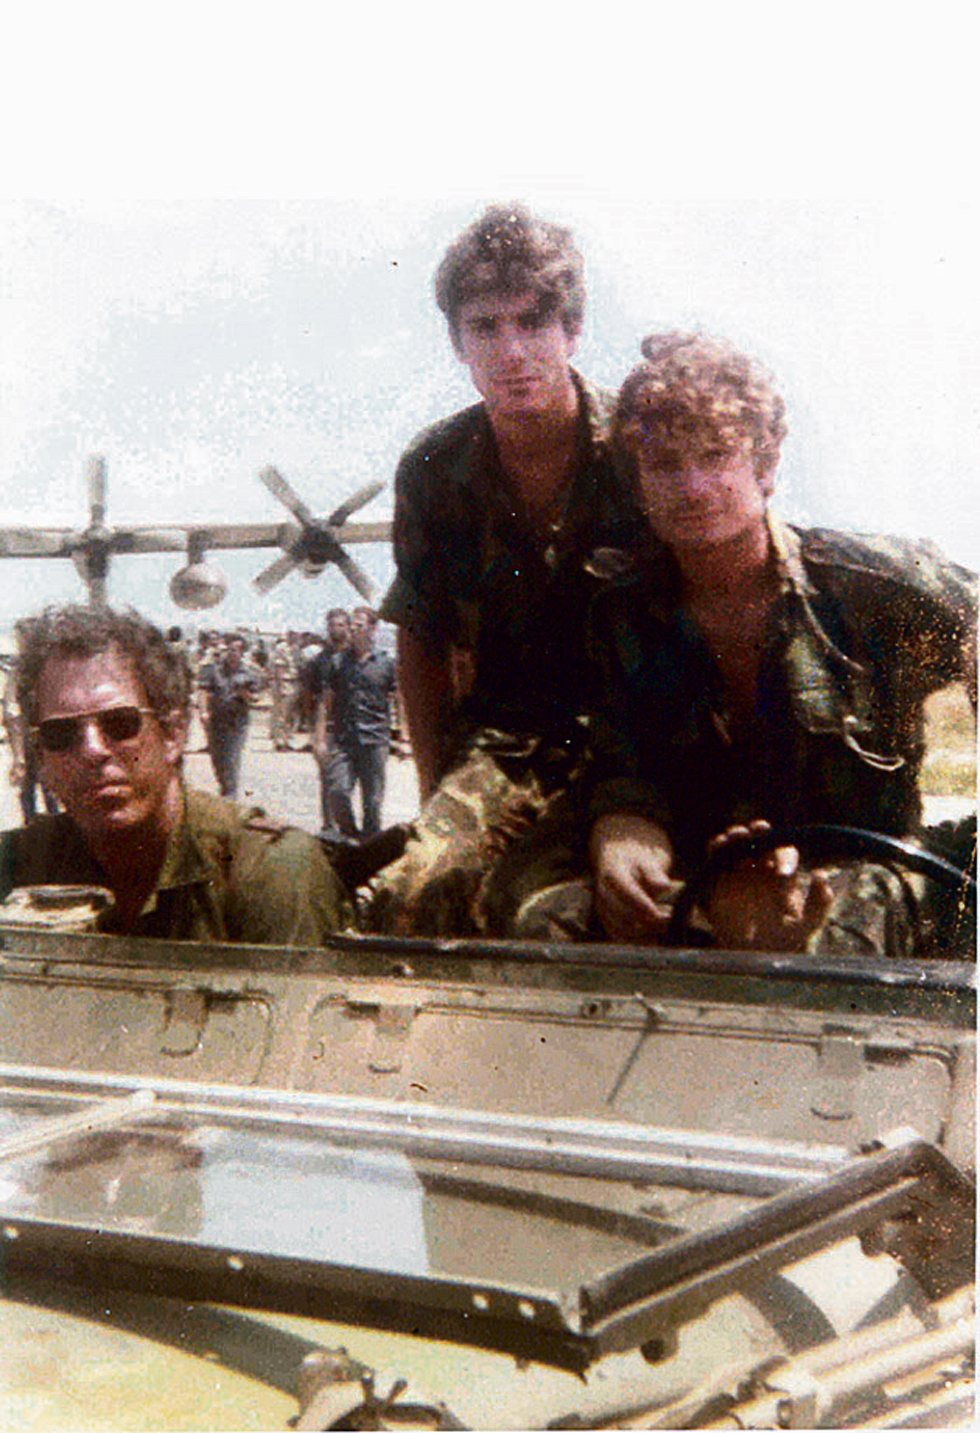 Sayeret Matkal commandos Danny Dagan, Shlomi Reisman and Gadi Ilan before the operation (Photo courtesy of Shlomi Reisman)